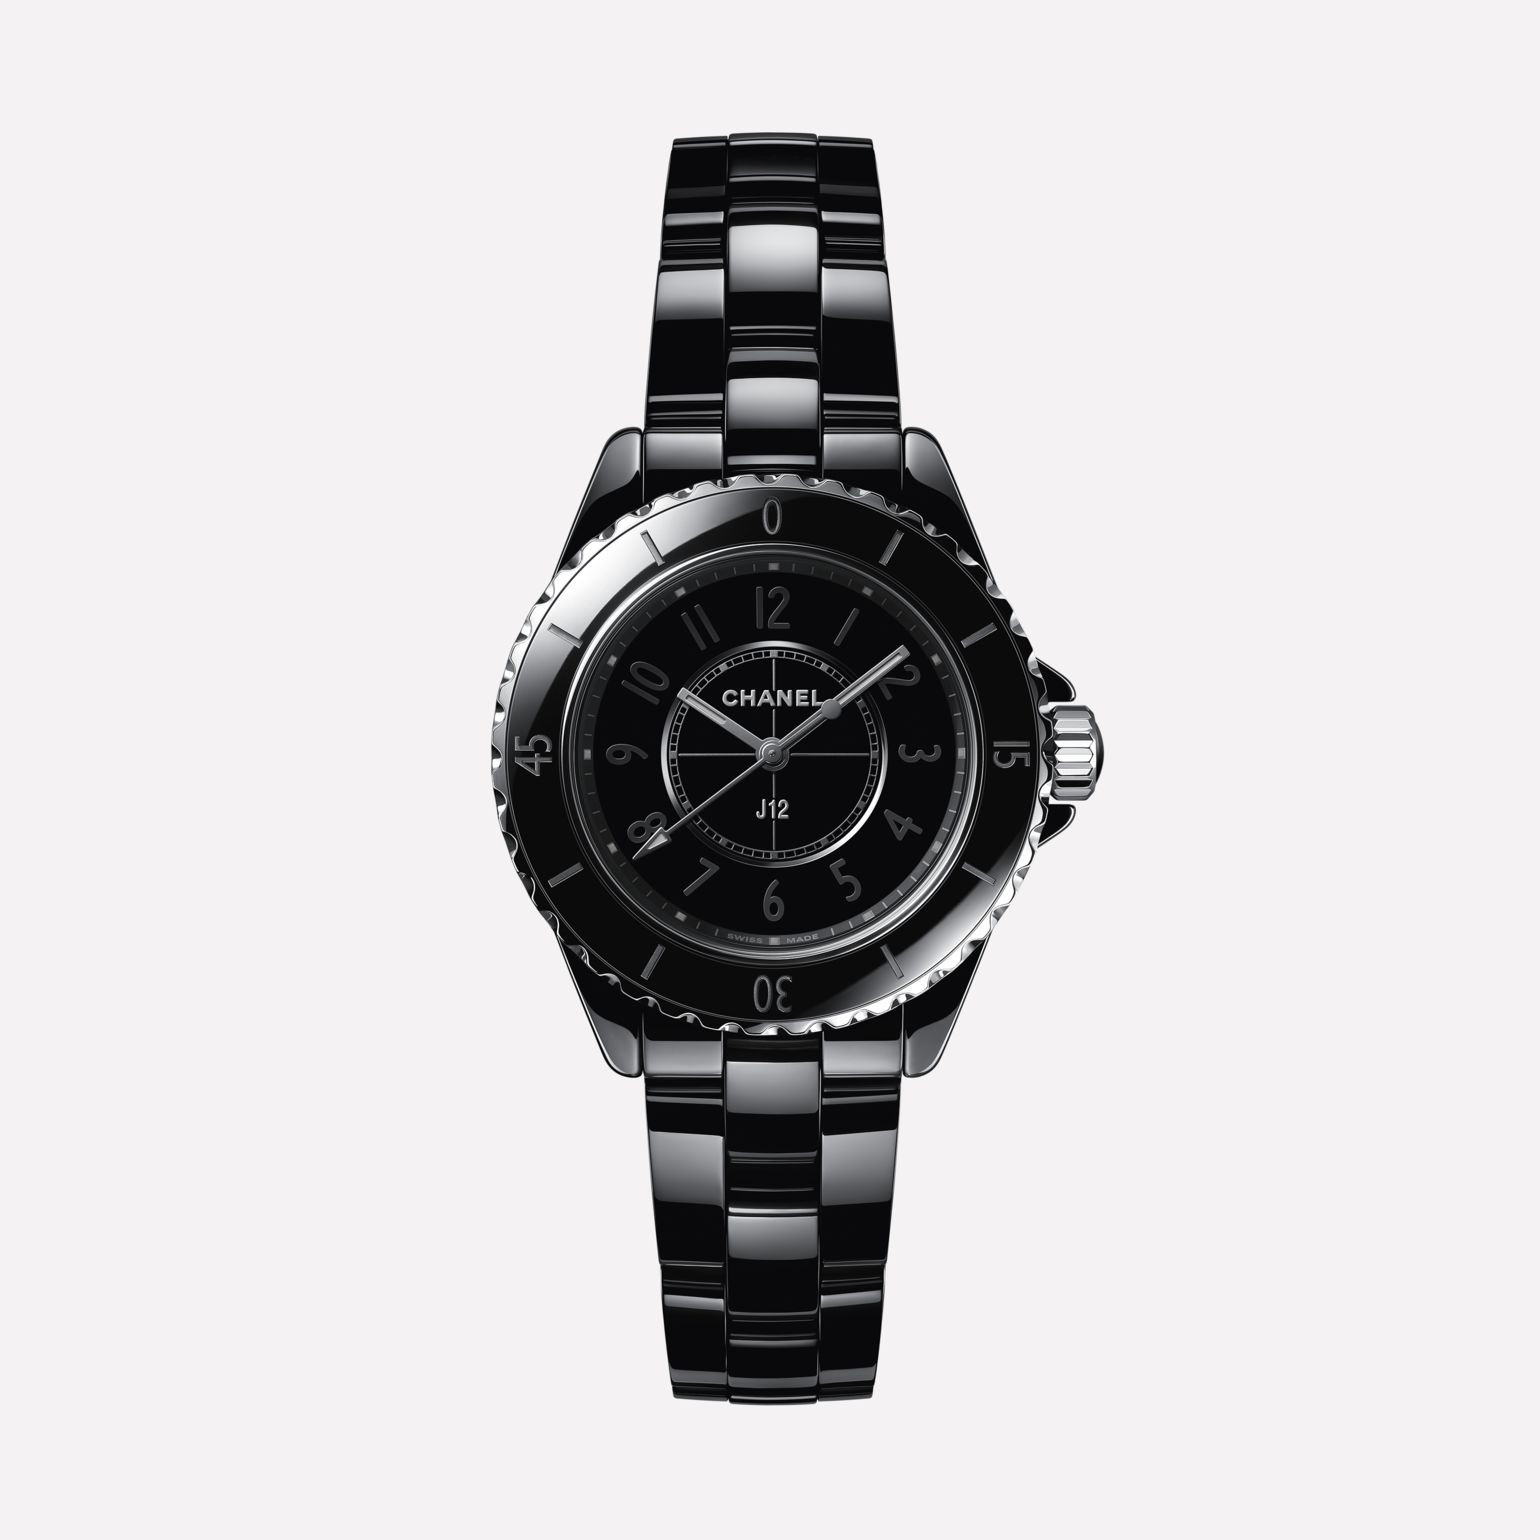 J12 Phantom Watch, 33 mm Black highly resistant ceramic and steel